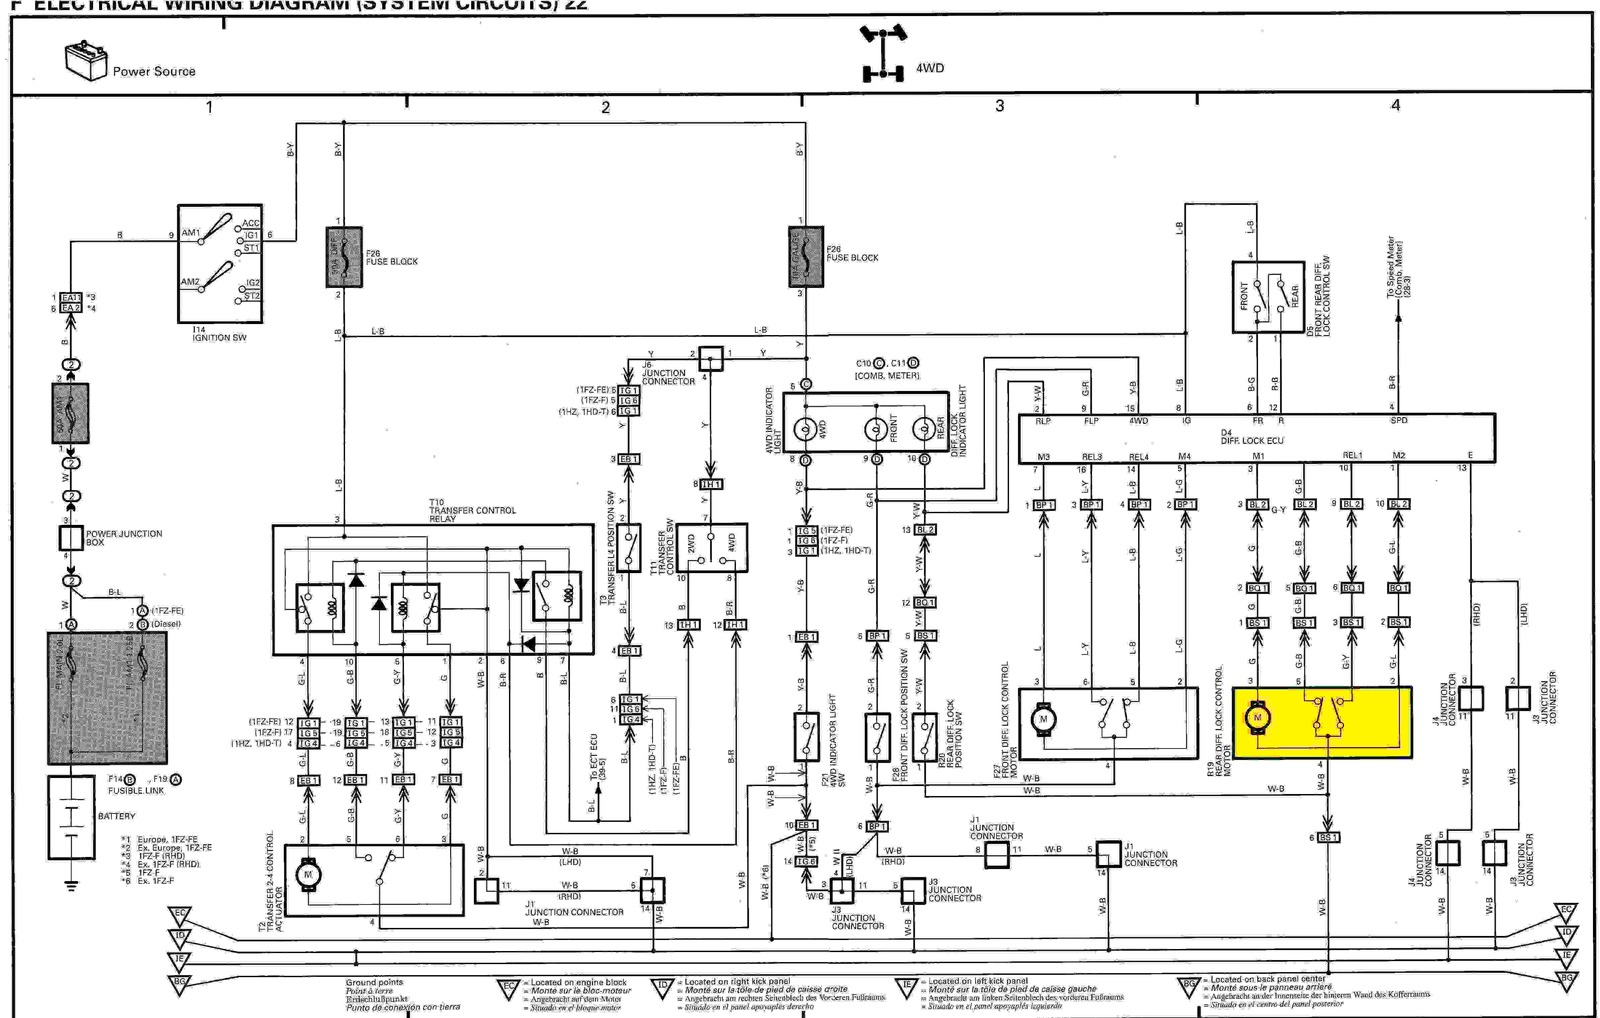 1hd fte wiring diagram toyota landcruiser 80 series wiring diagram toyota landcruiser 100 series wiring diagram download at n-0.co